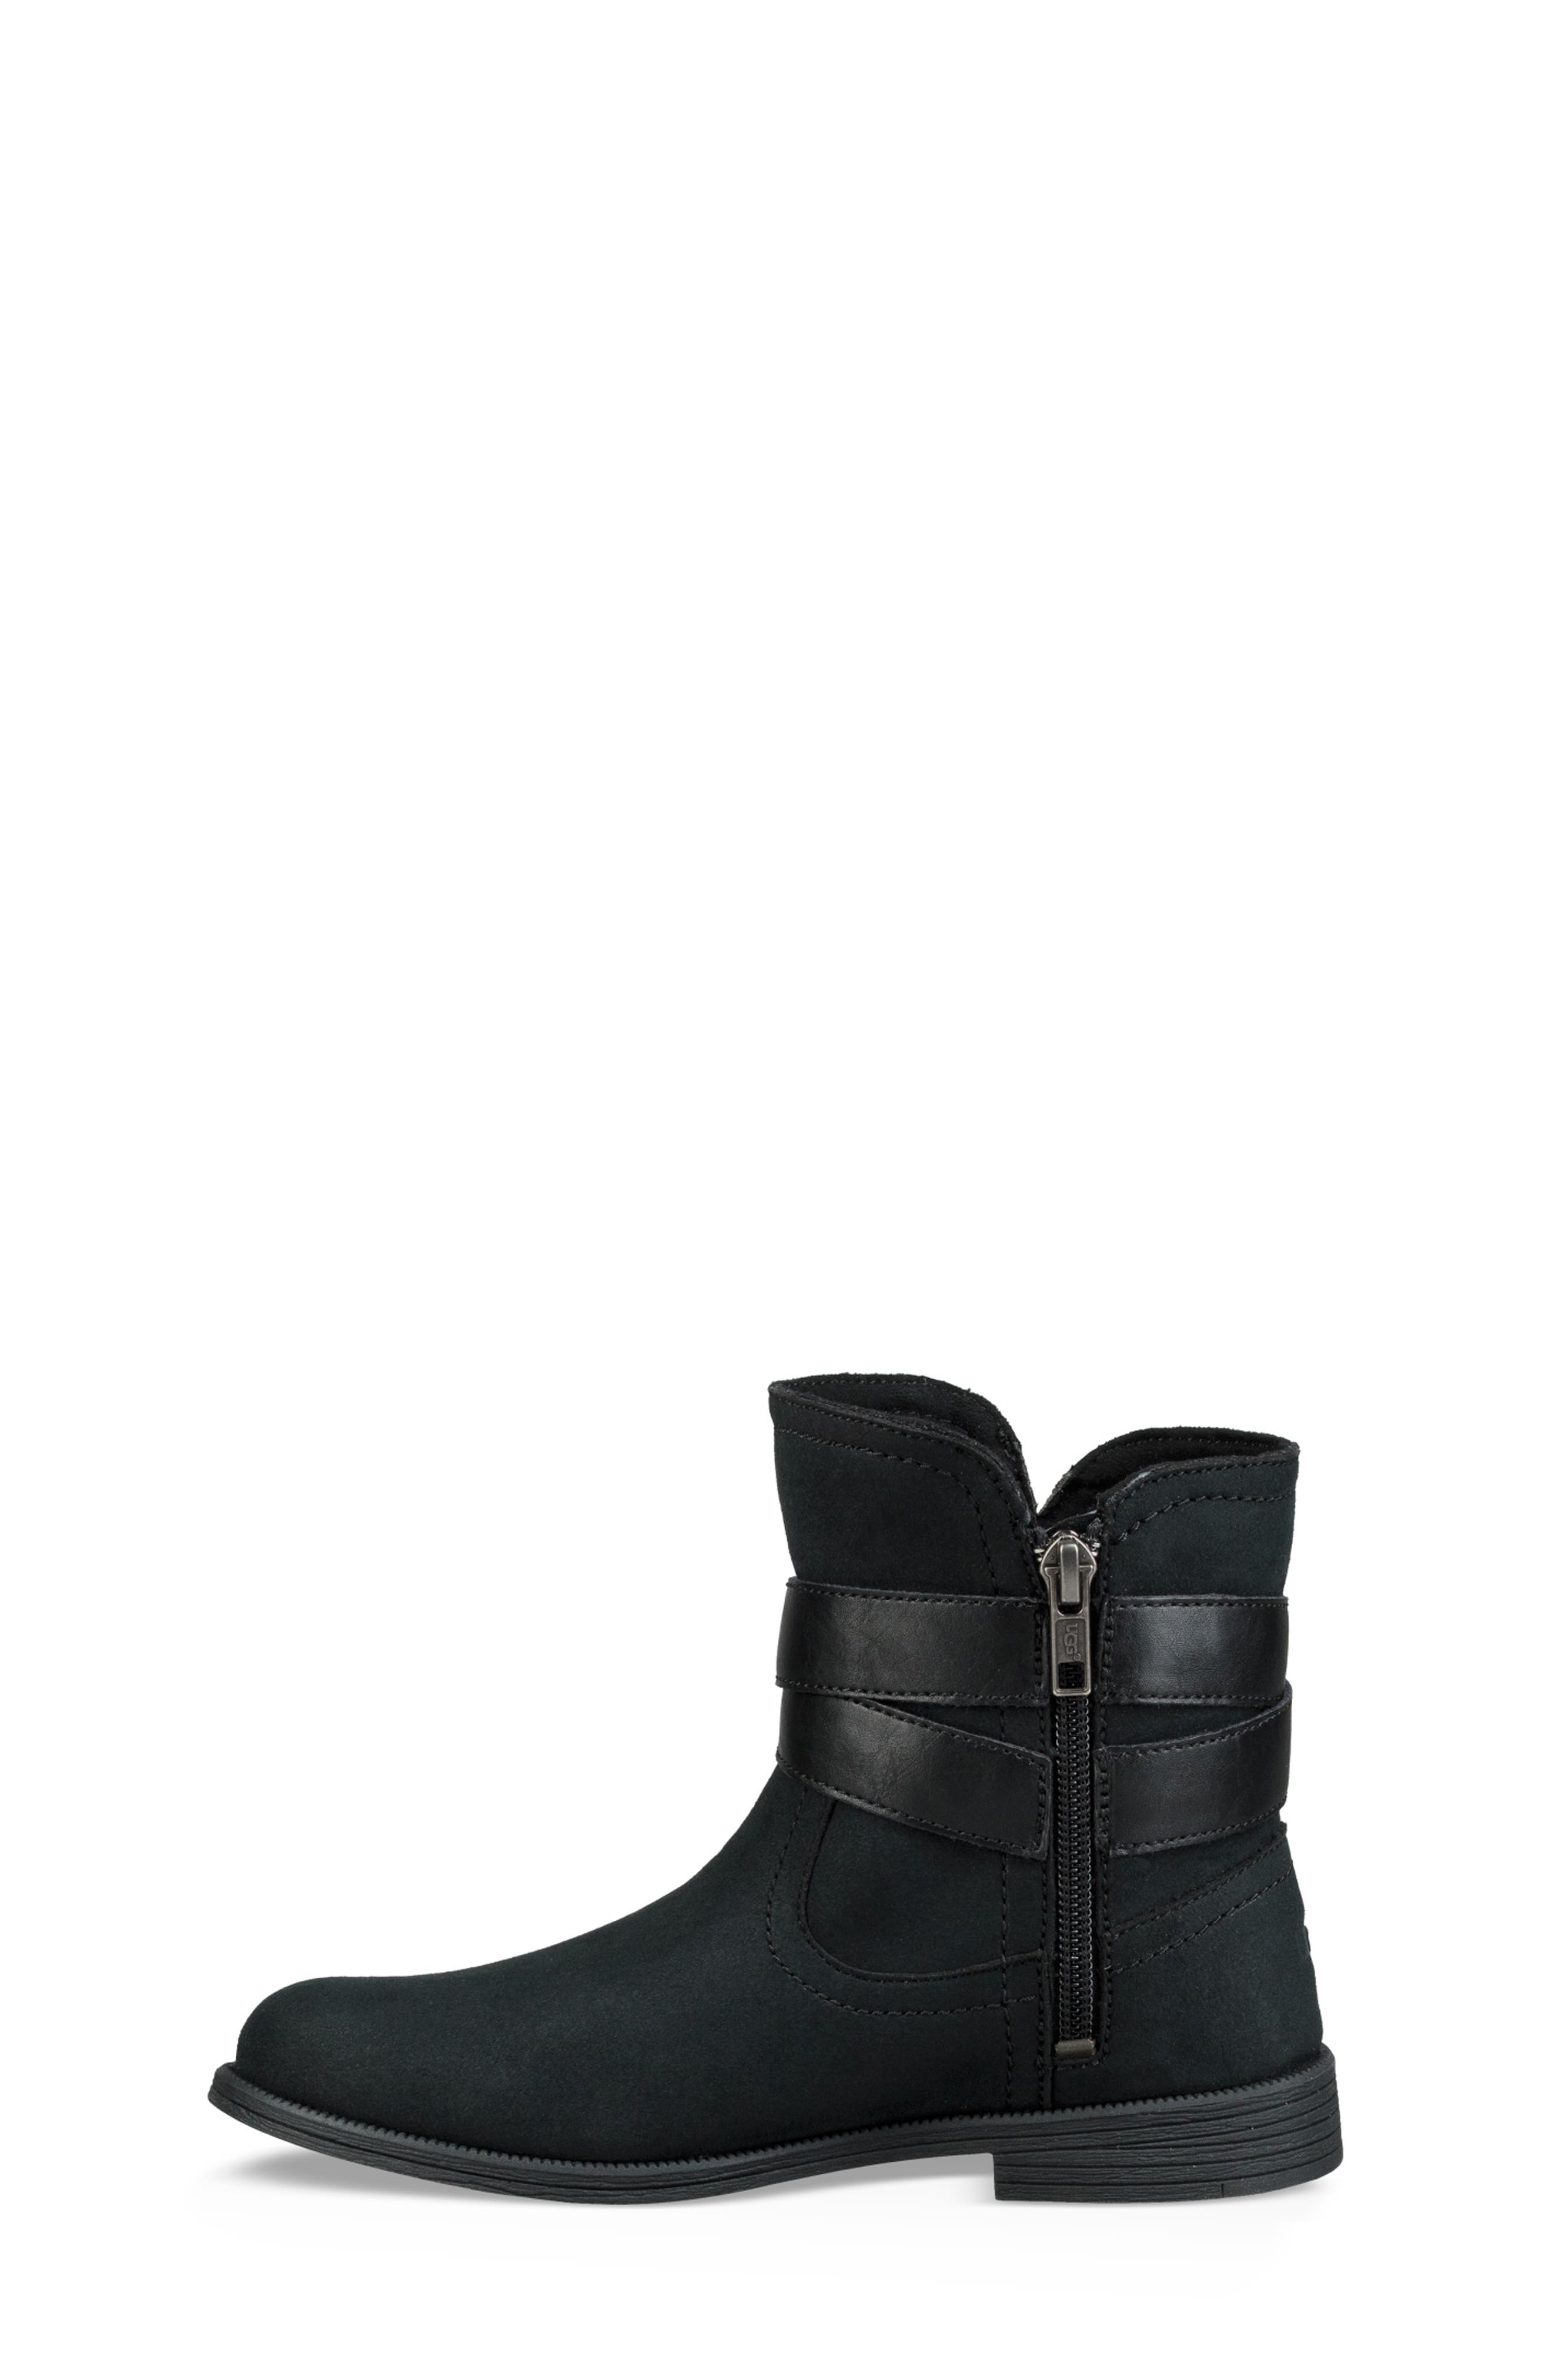 UGG Joanie Bow Boot,                             Alternate thumbnail 6, color,                             BLACK